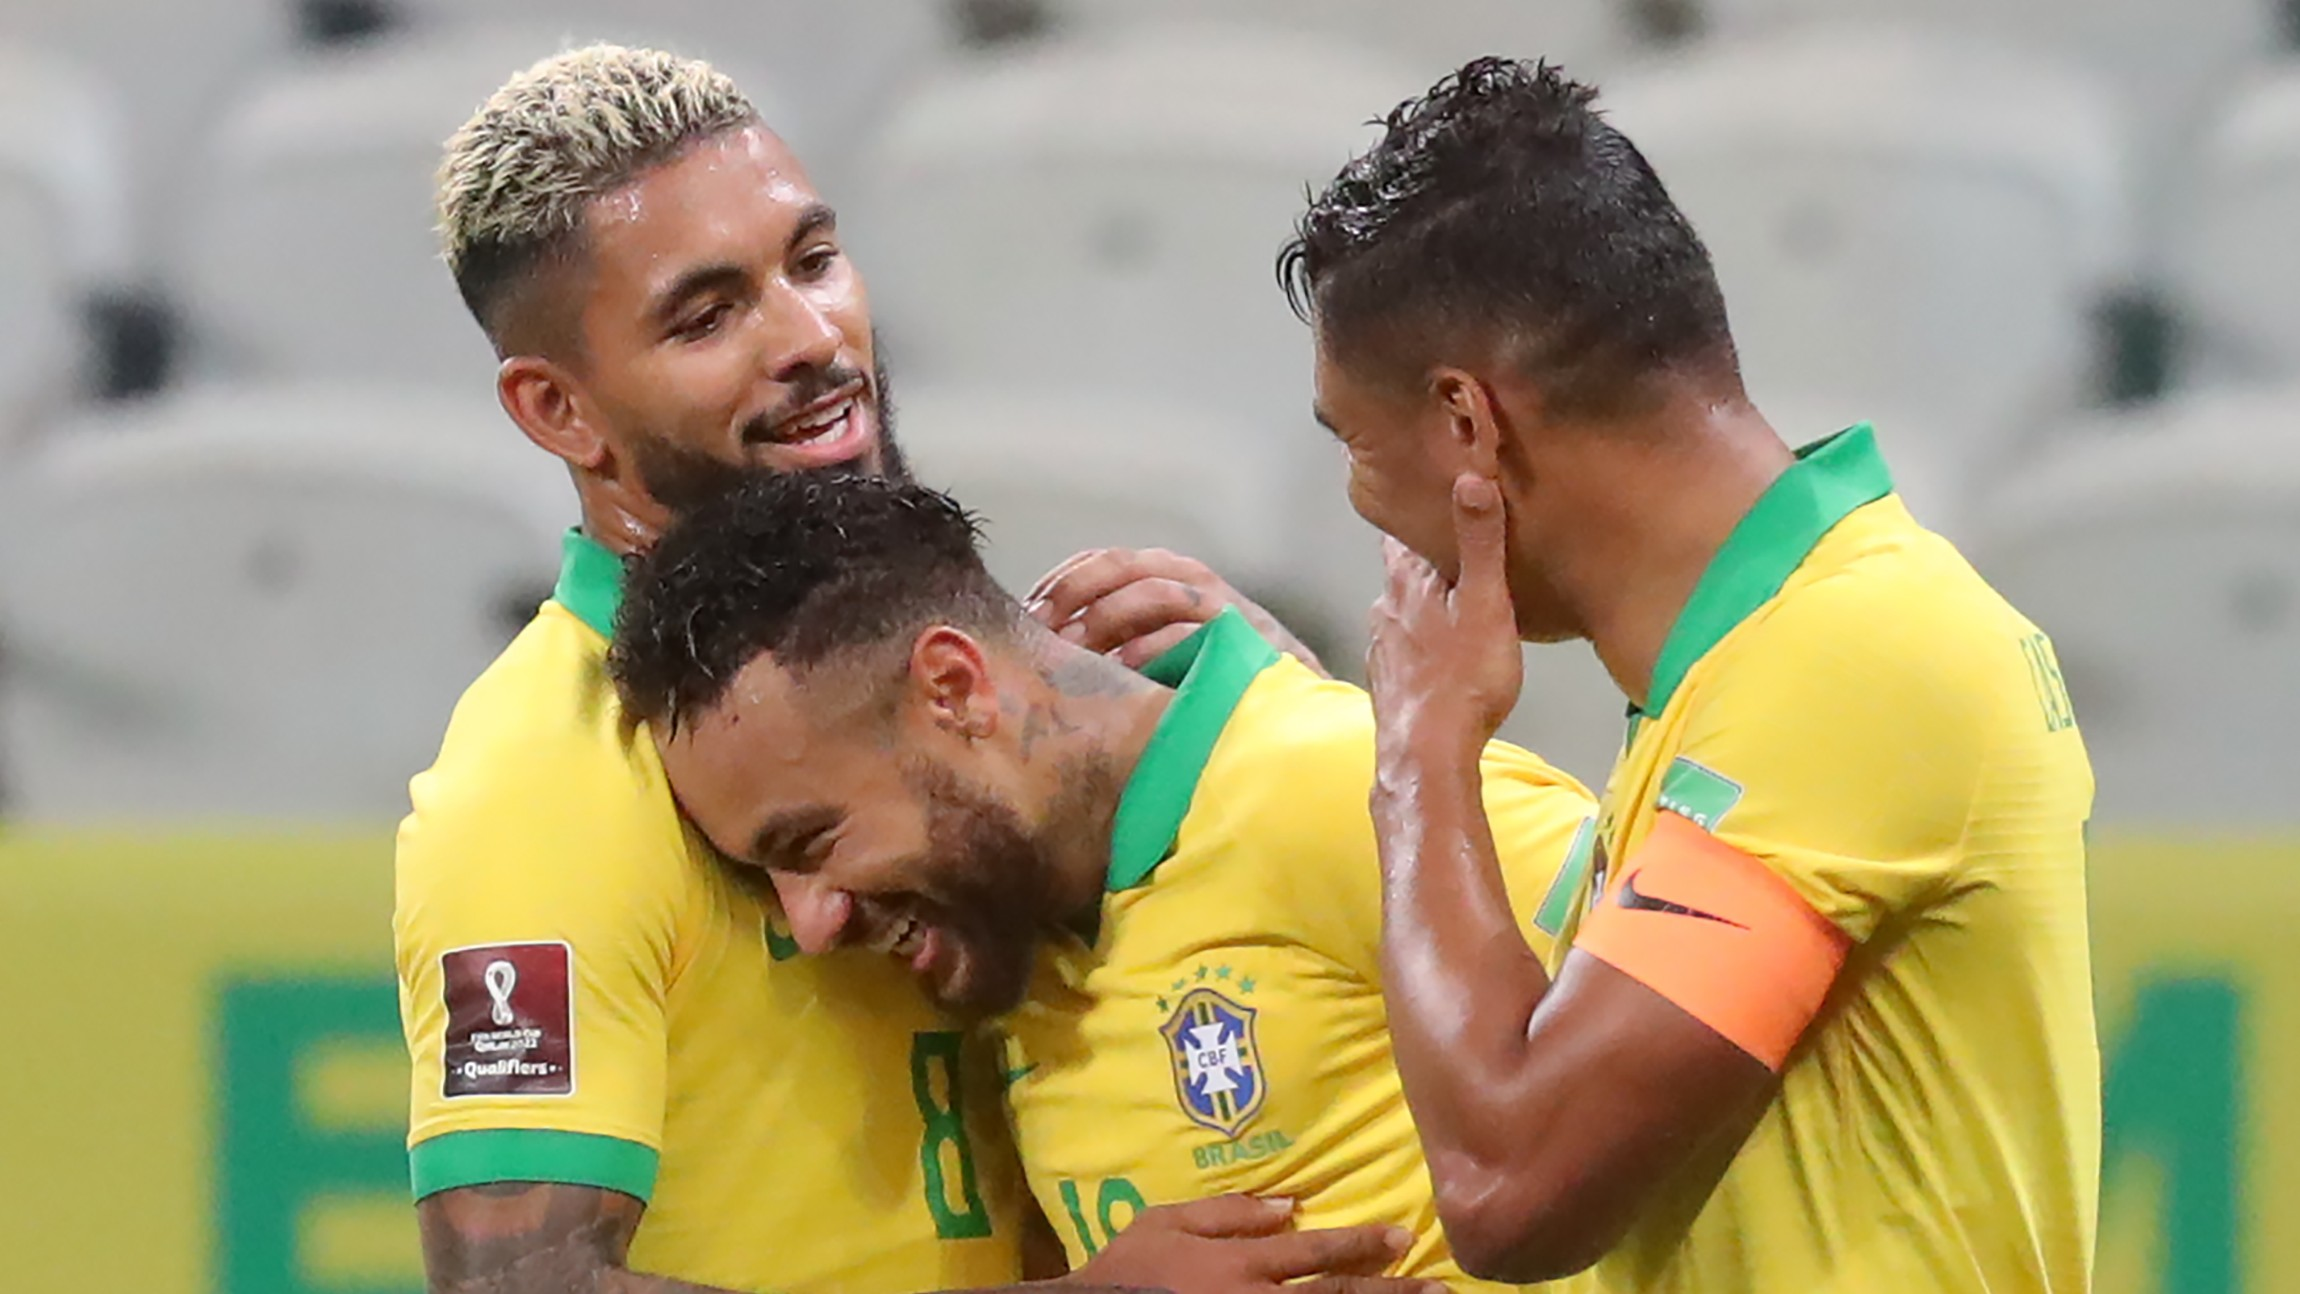 CONMEBOL World Cup 2022 qualifiers on US TV: How to watch Brazil, Argentina, Colombia & South American matches